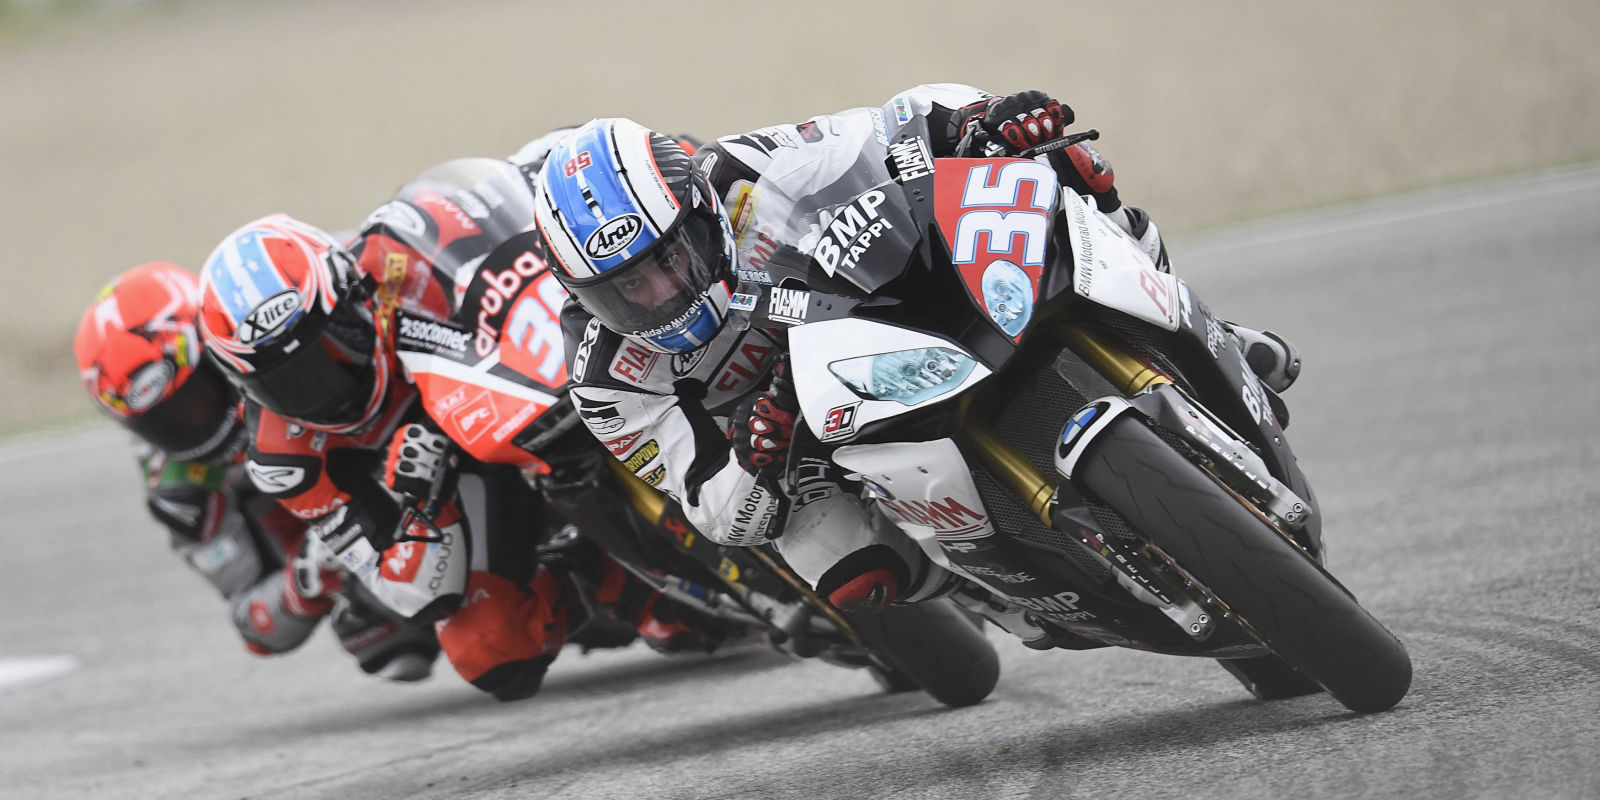 What It Takes To Turn An Ordinary Motorcycle Into A Racing